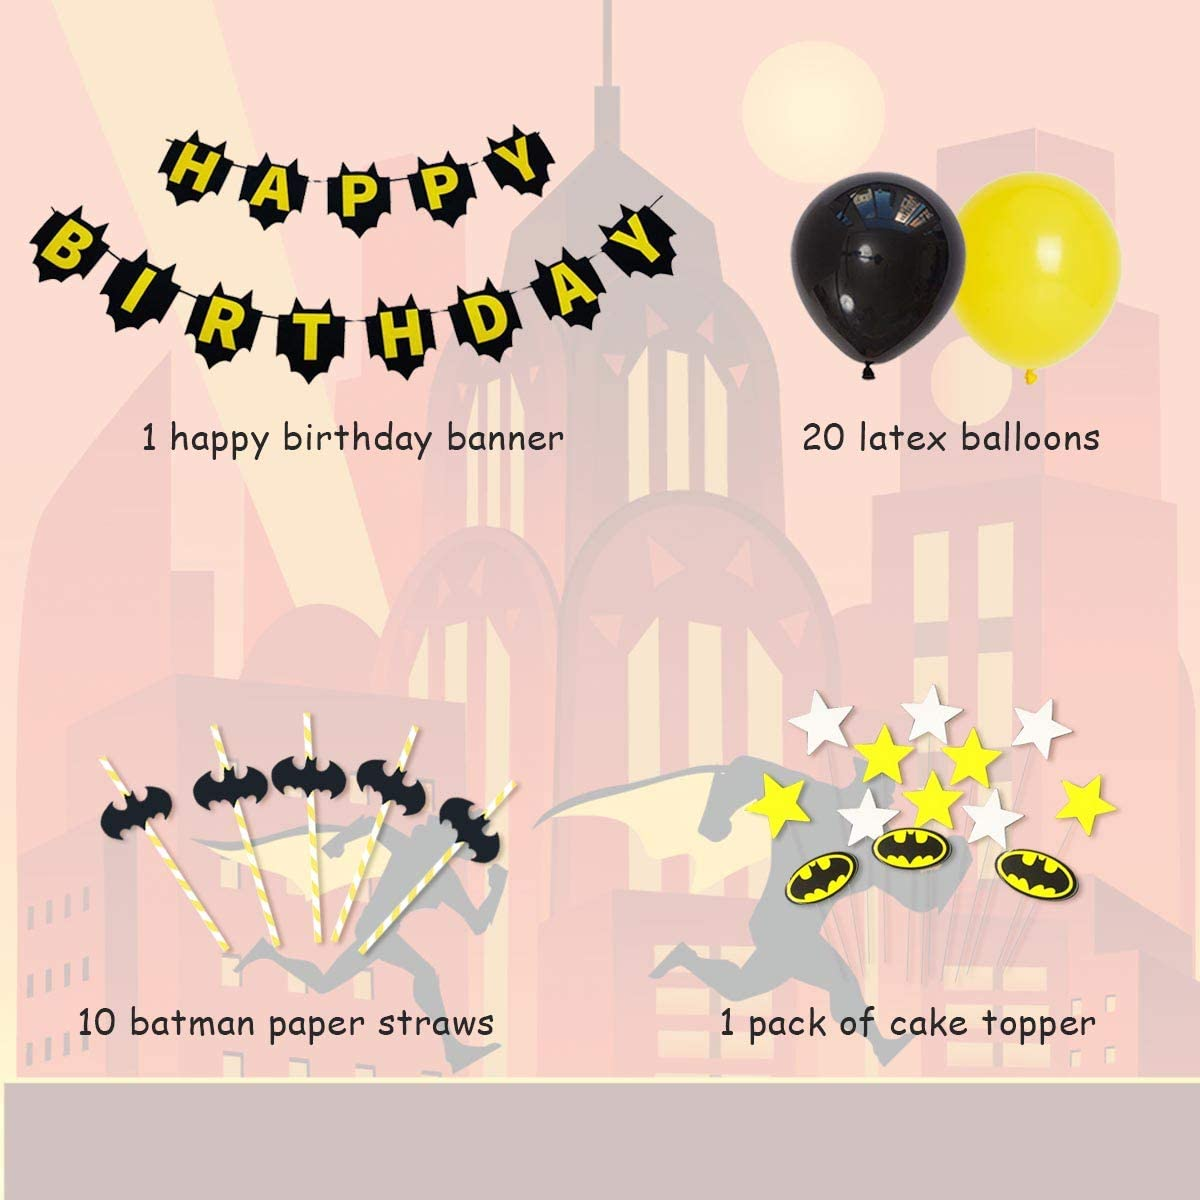 Batman Birthday Party Supplies Halloween Batman Theme Happy Birthday Banner, Cake Toppers Paper Straw for Birthday Party Decorations Favors